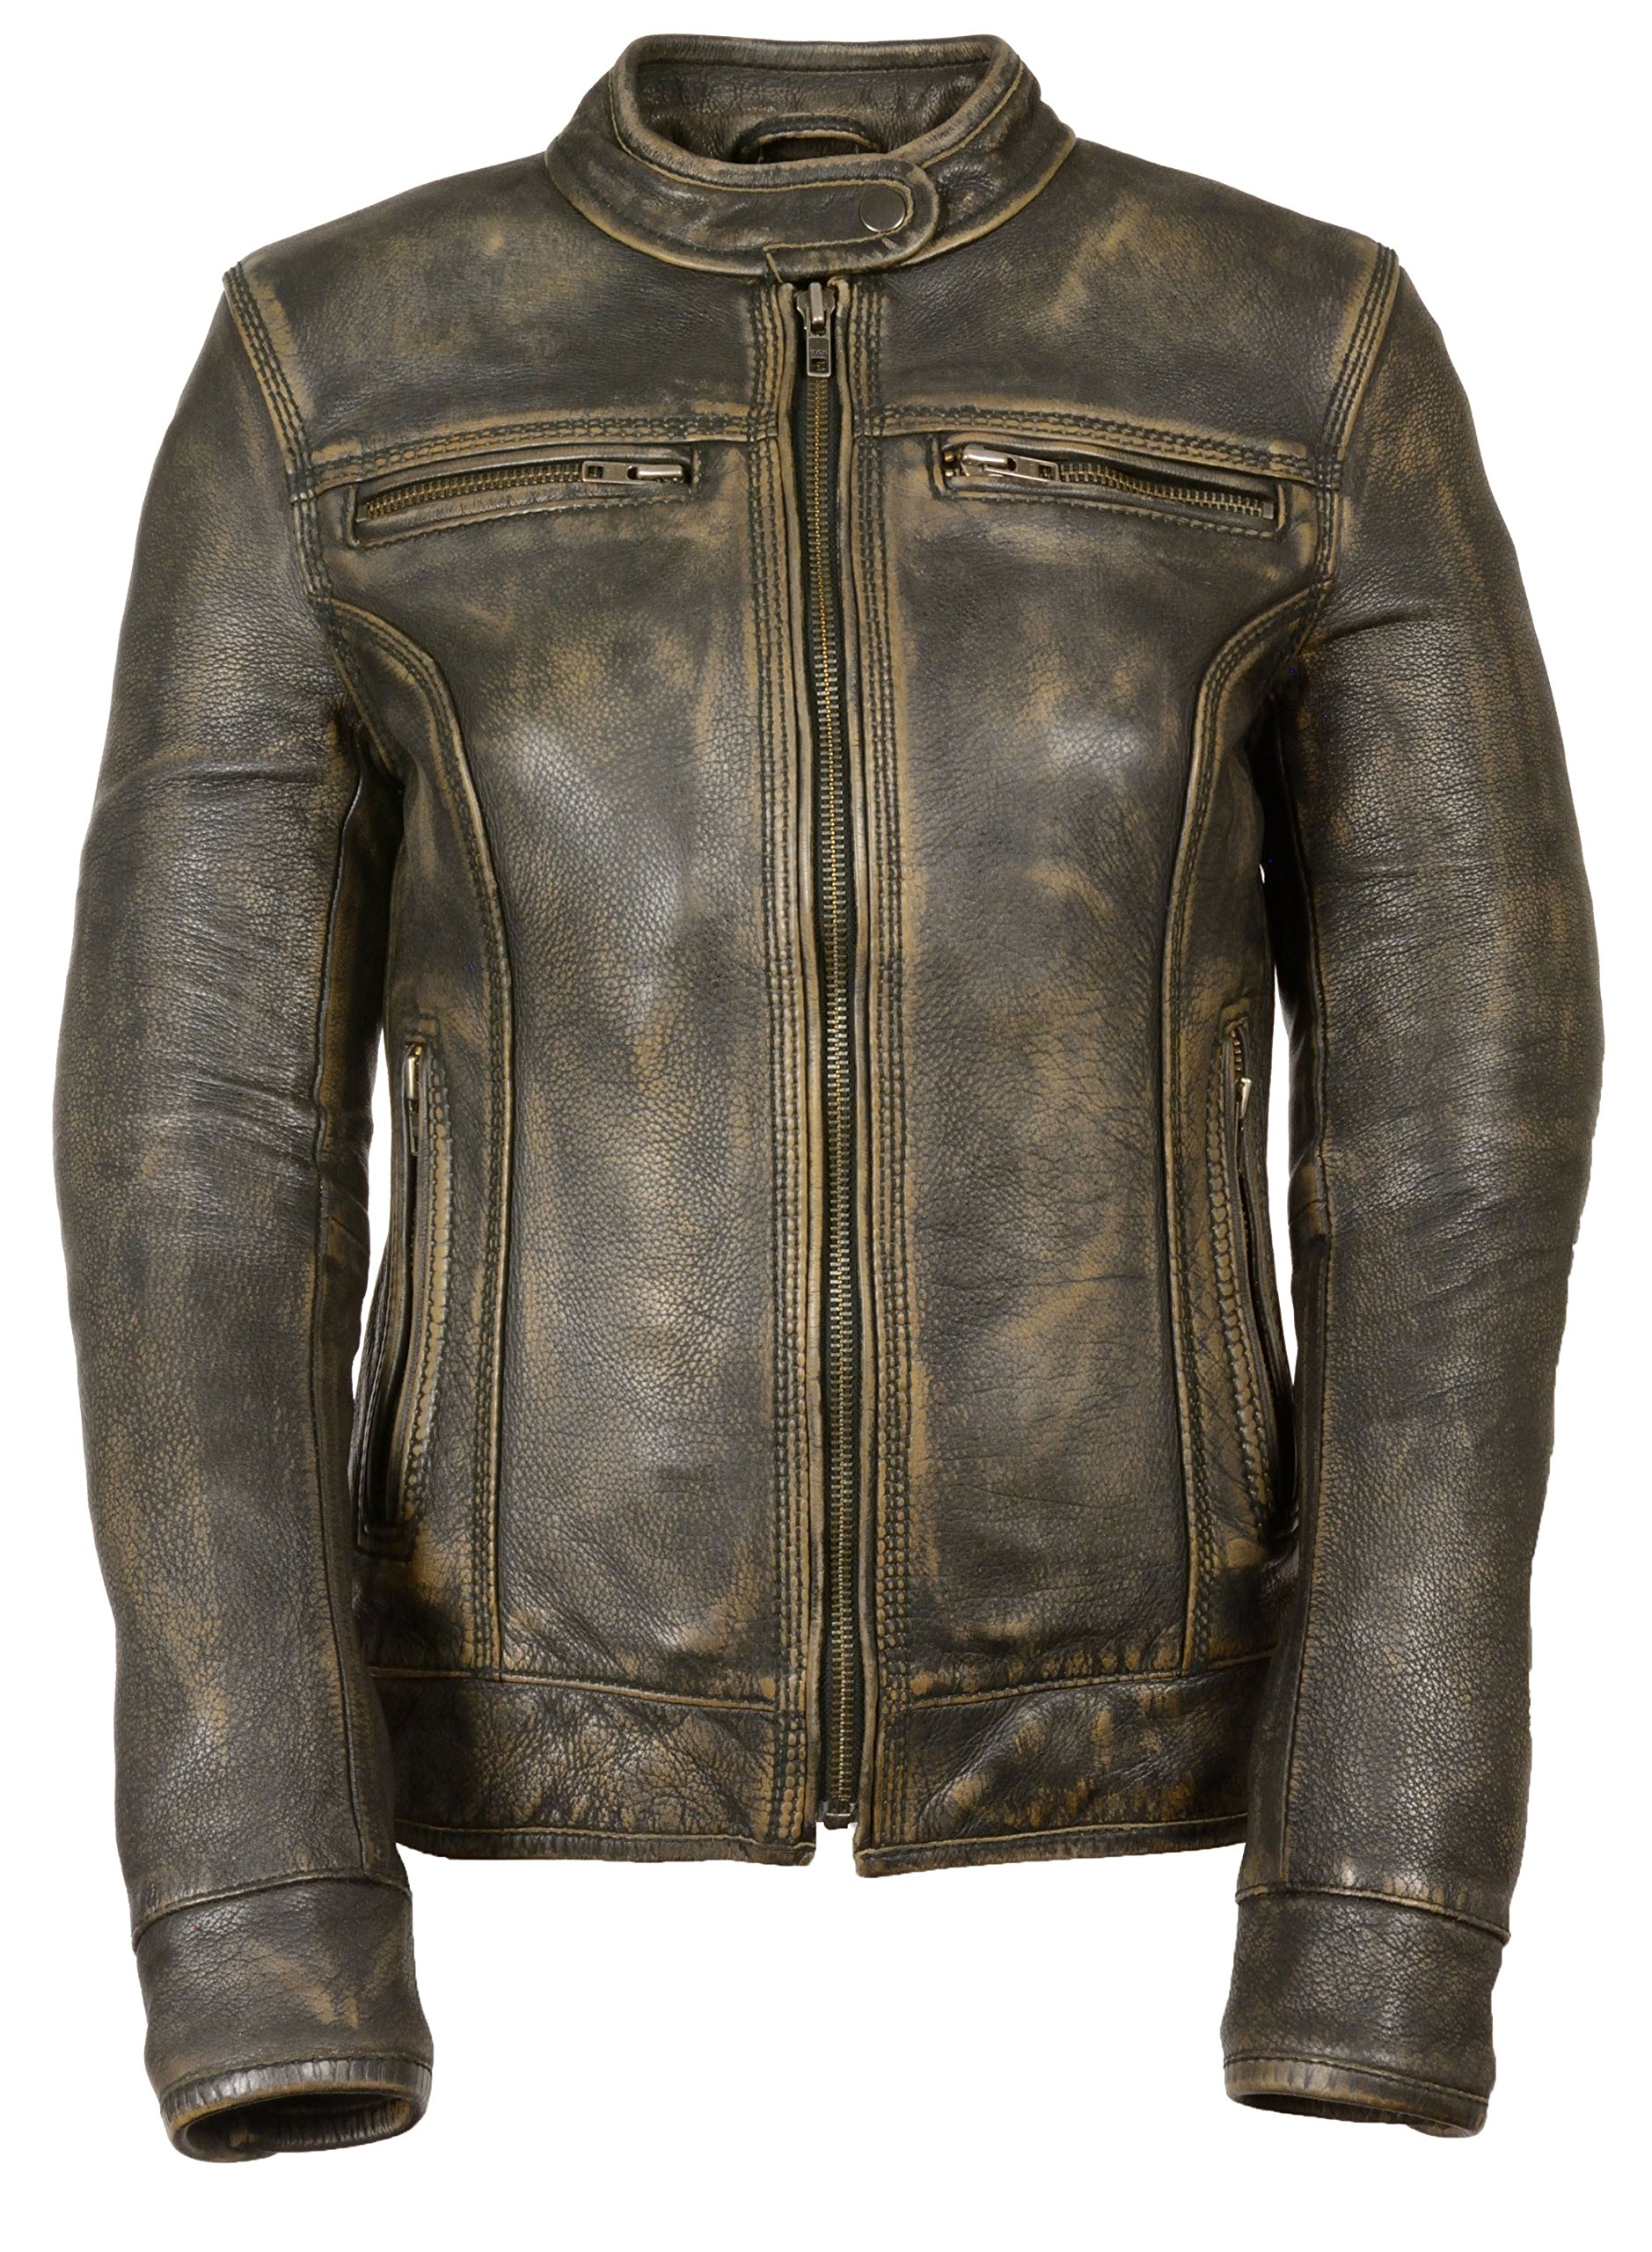 Womens Distressed Leather Vented Scooter Jacket, Brown Size S